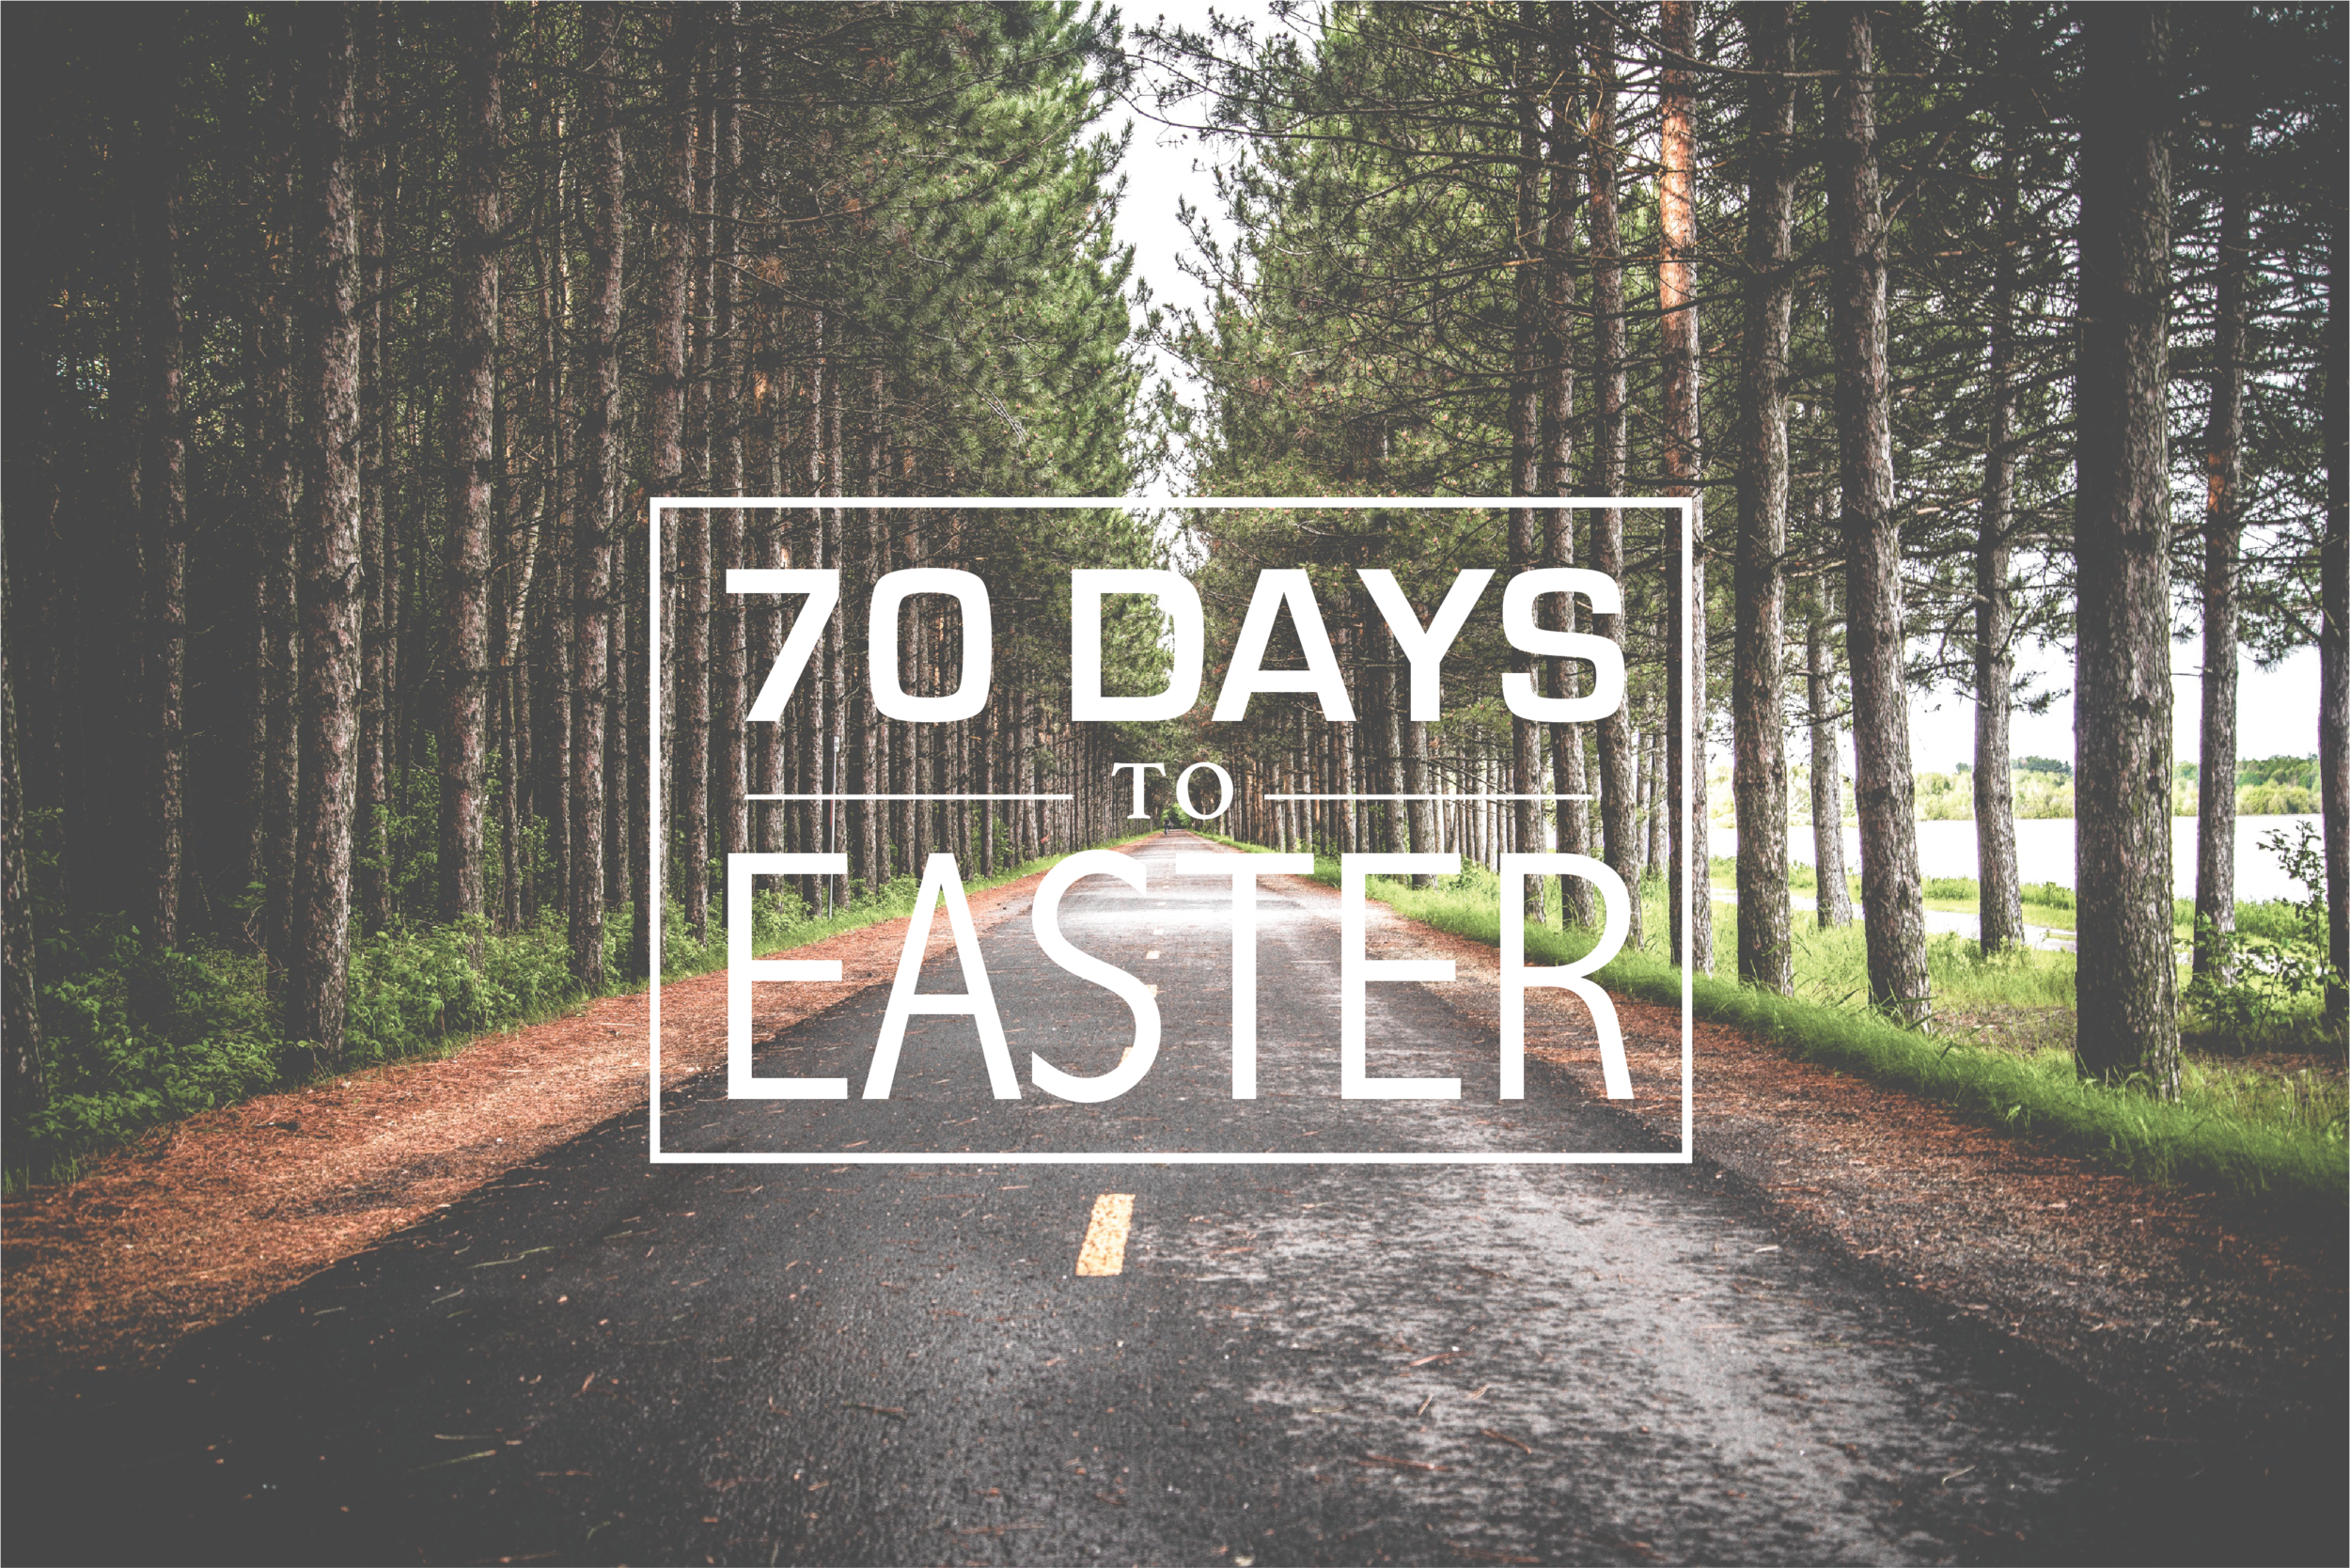 70 Days To Easter.png